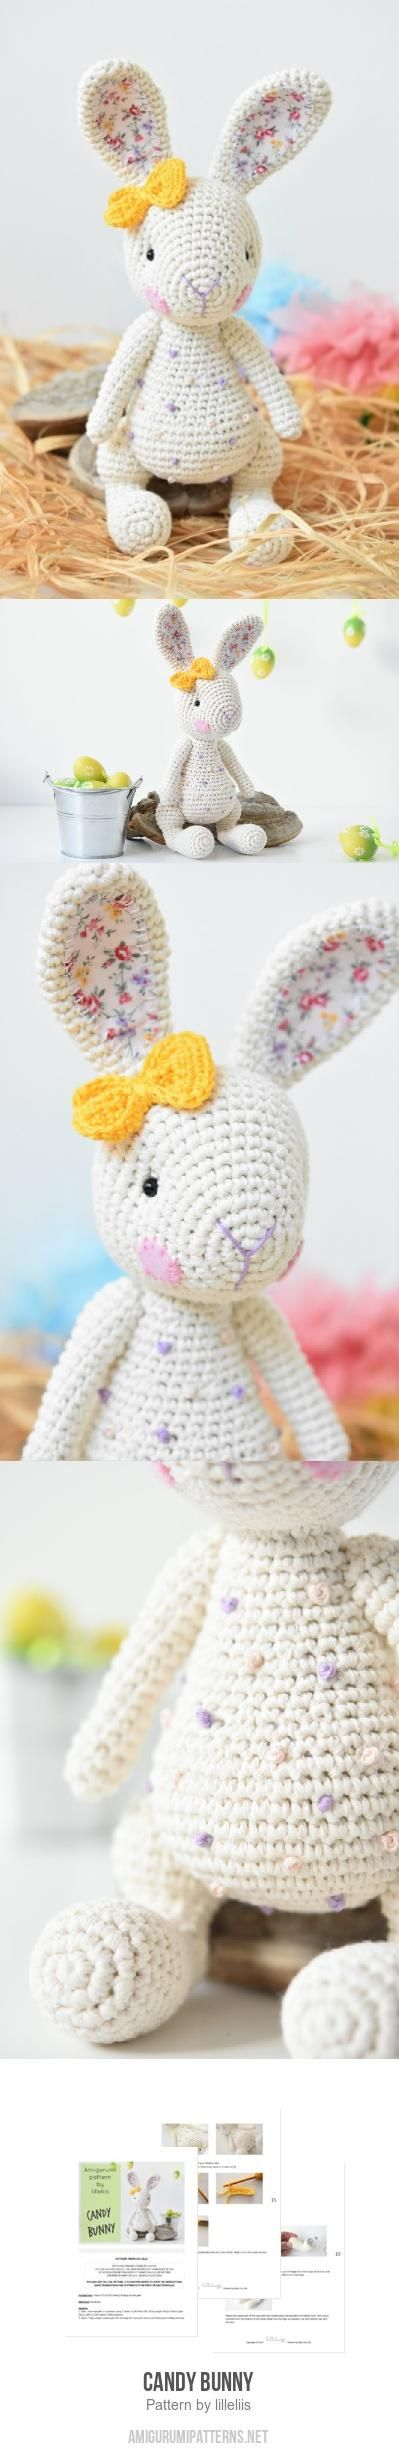 1046 best amigurumis images on Pinterest | Crochet food, Amigurumi ...